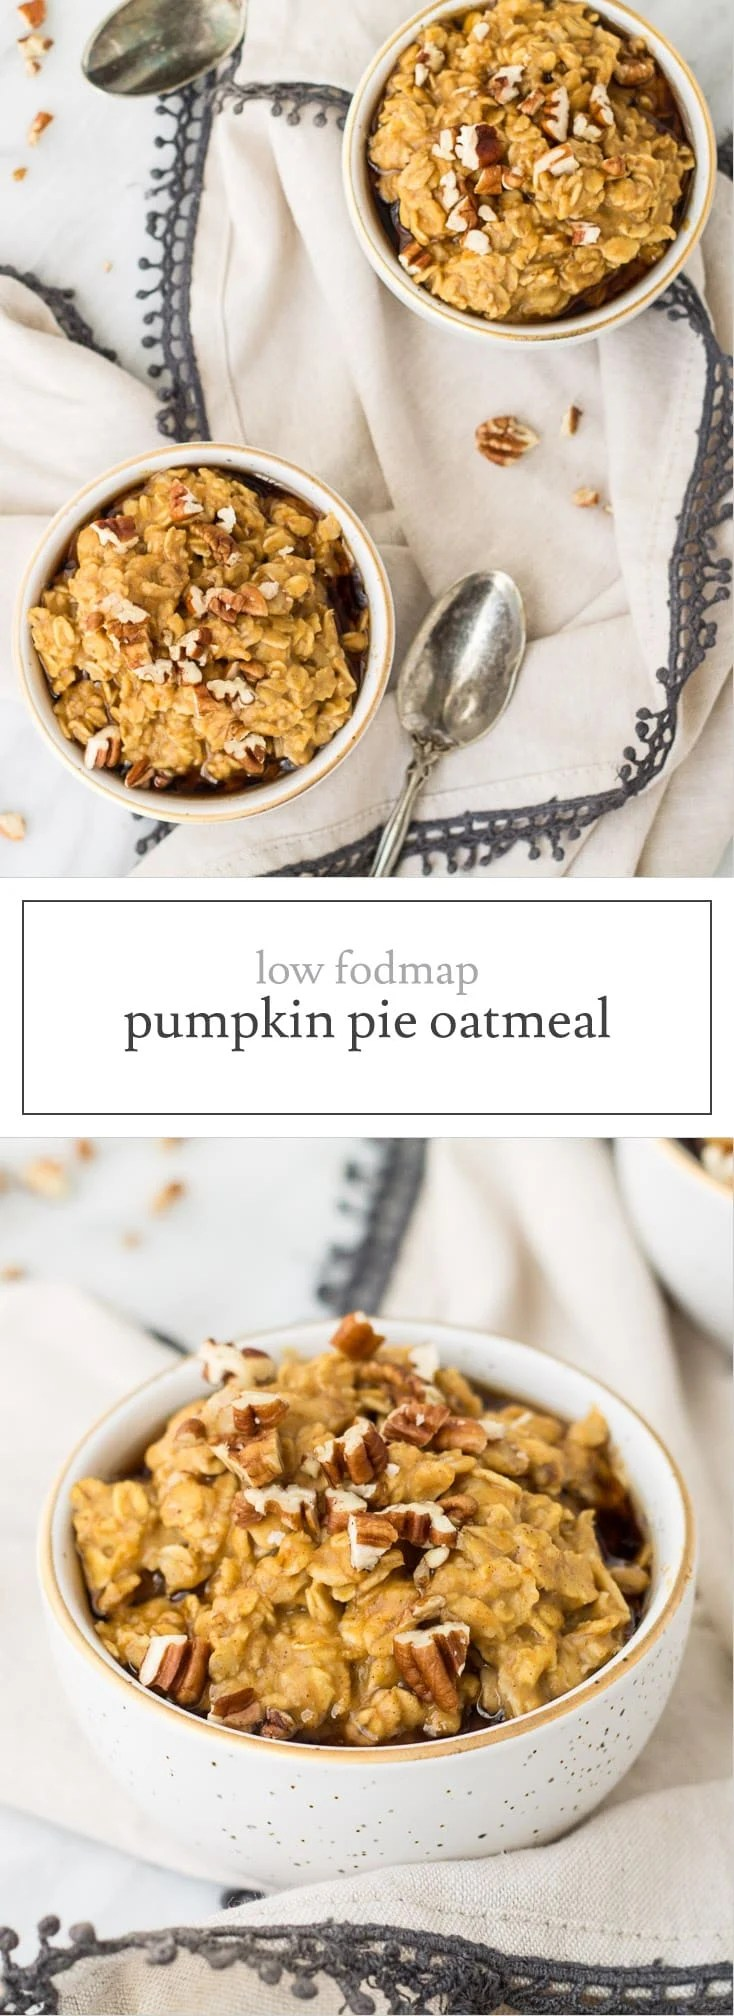 Filled with whole grain oats and nutrient-packed pumpkin, this Low Fodmap Pumpkin Pie Oatmeal is a fantastic fall-inspired breakfast. Gluten free and vegetarian